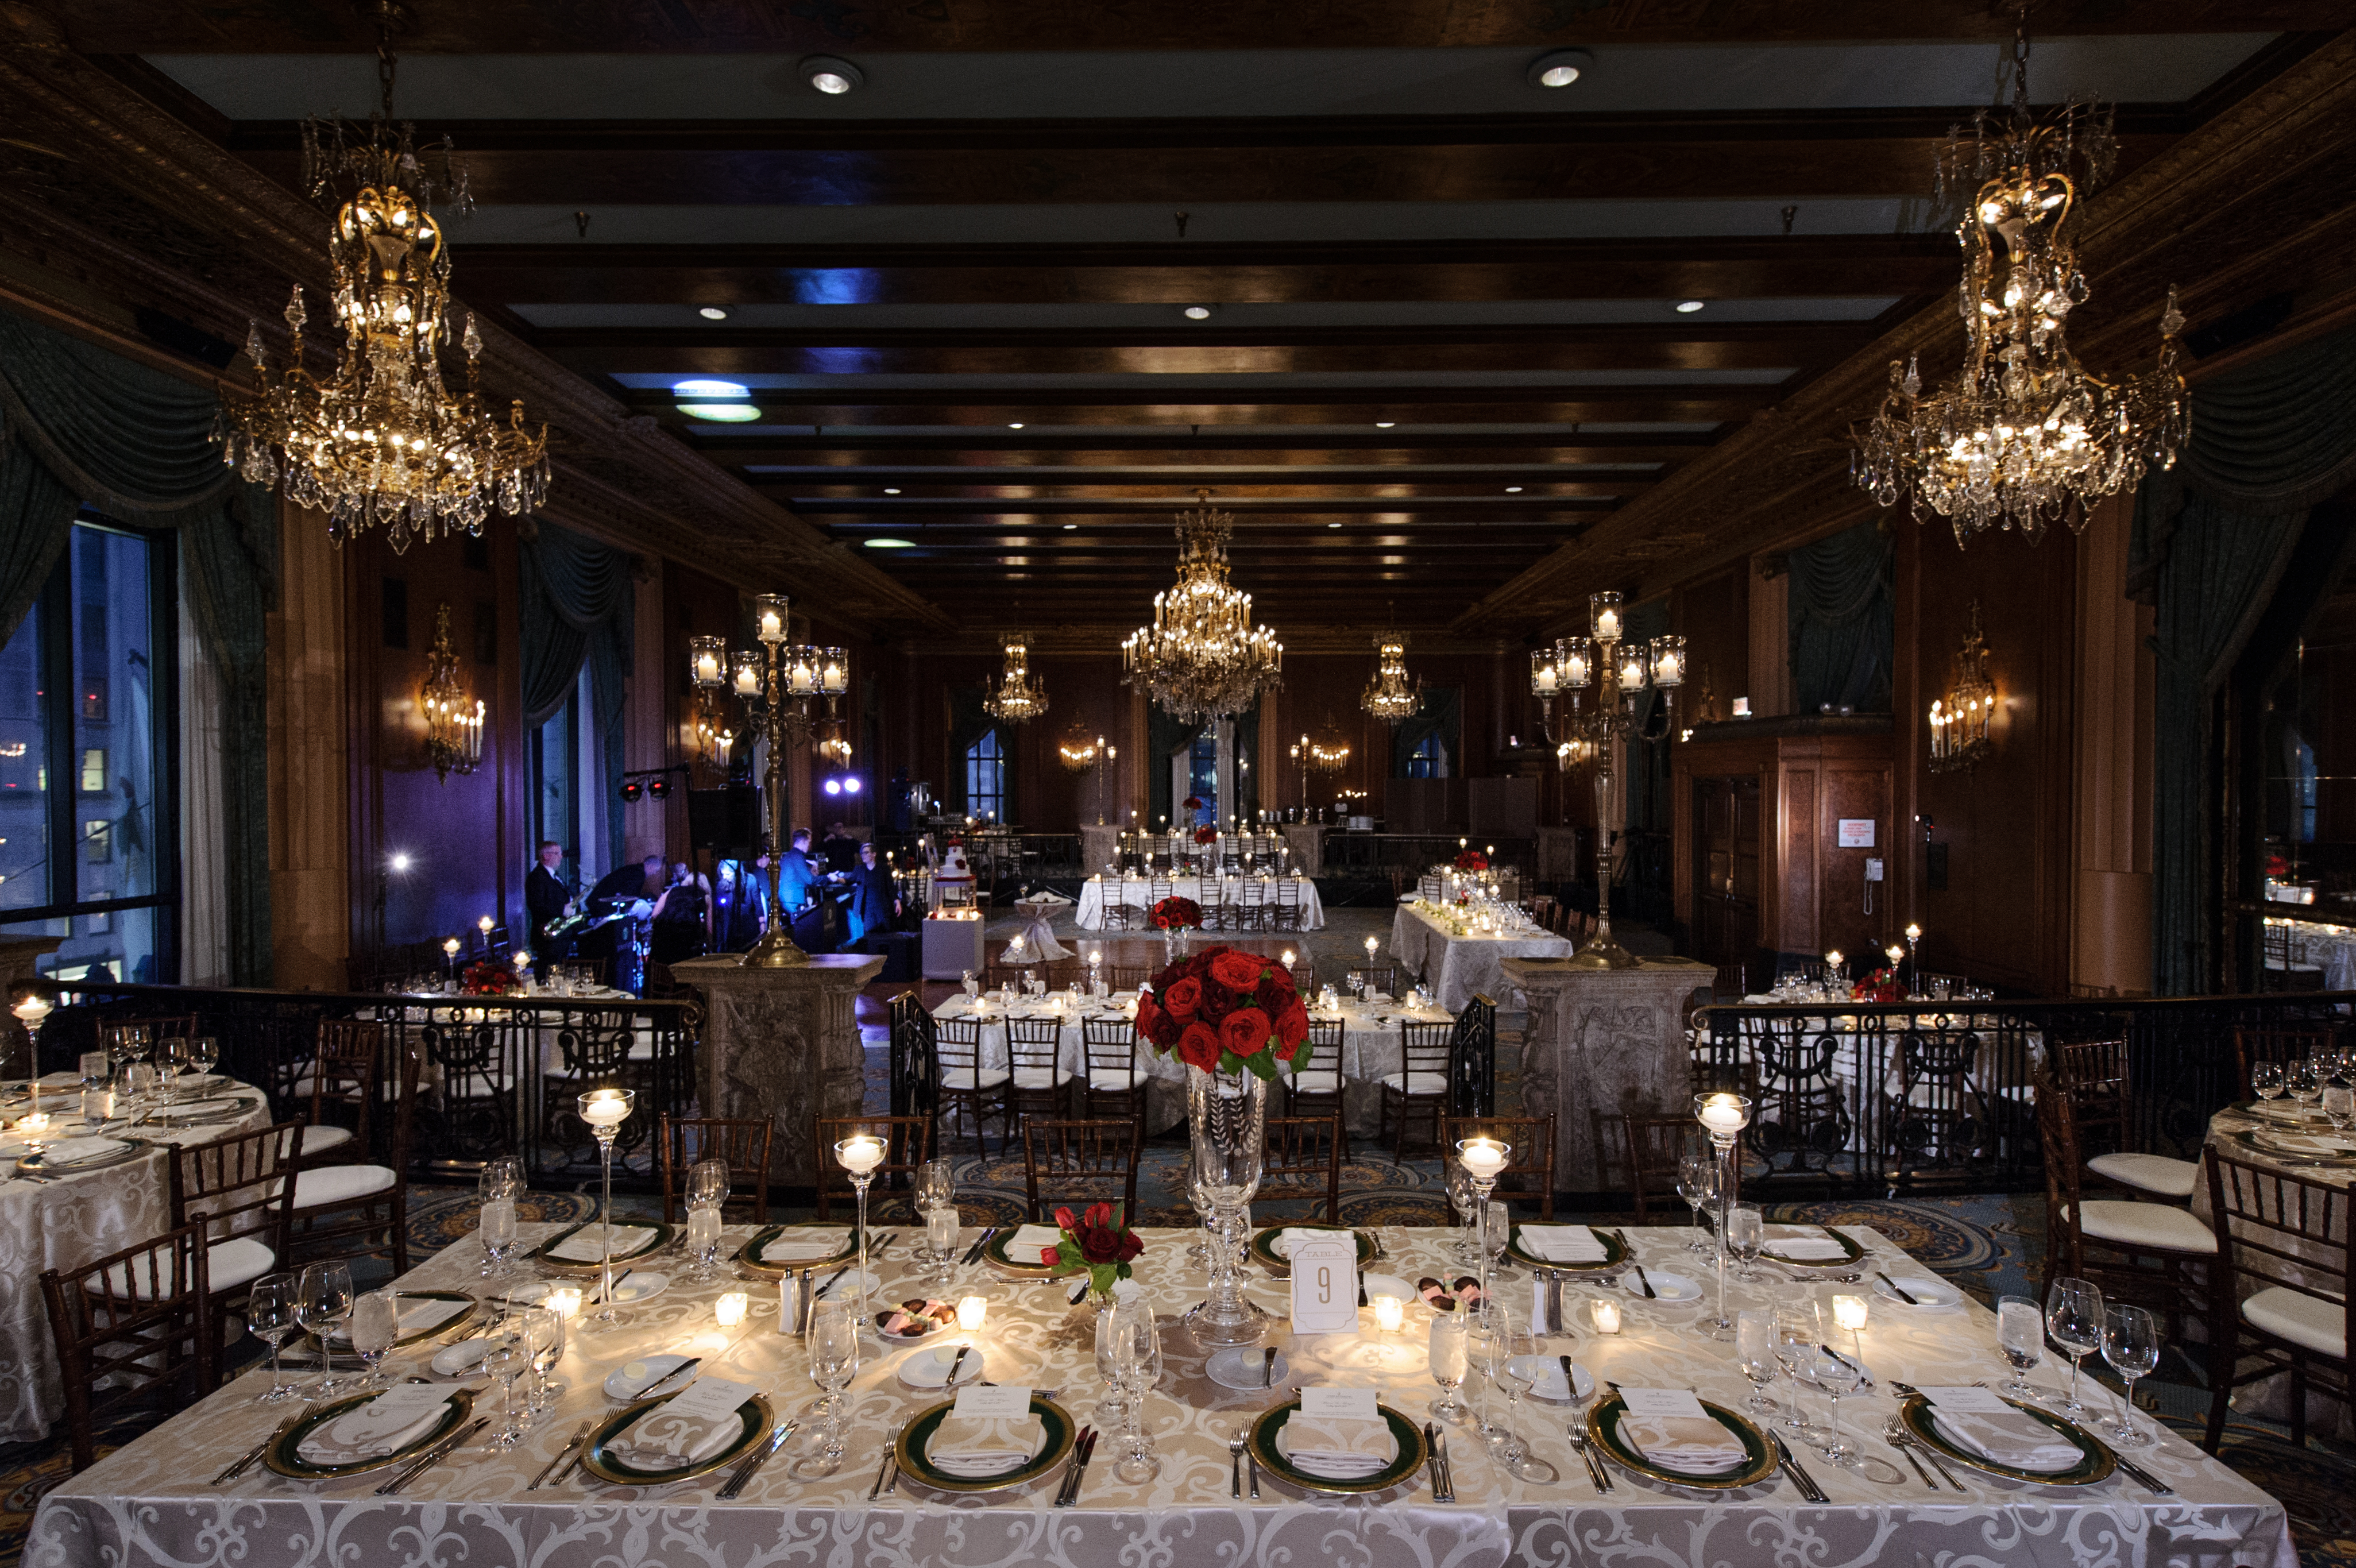 Sophisticated and Elegant Intimate Wedding in the Renaissance Ballroom.